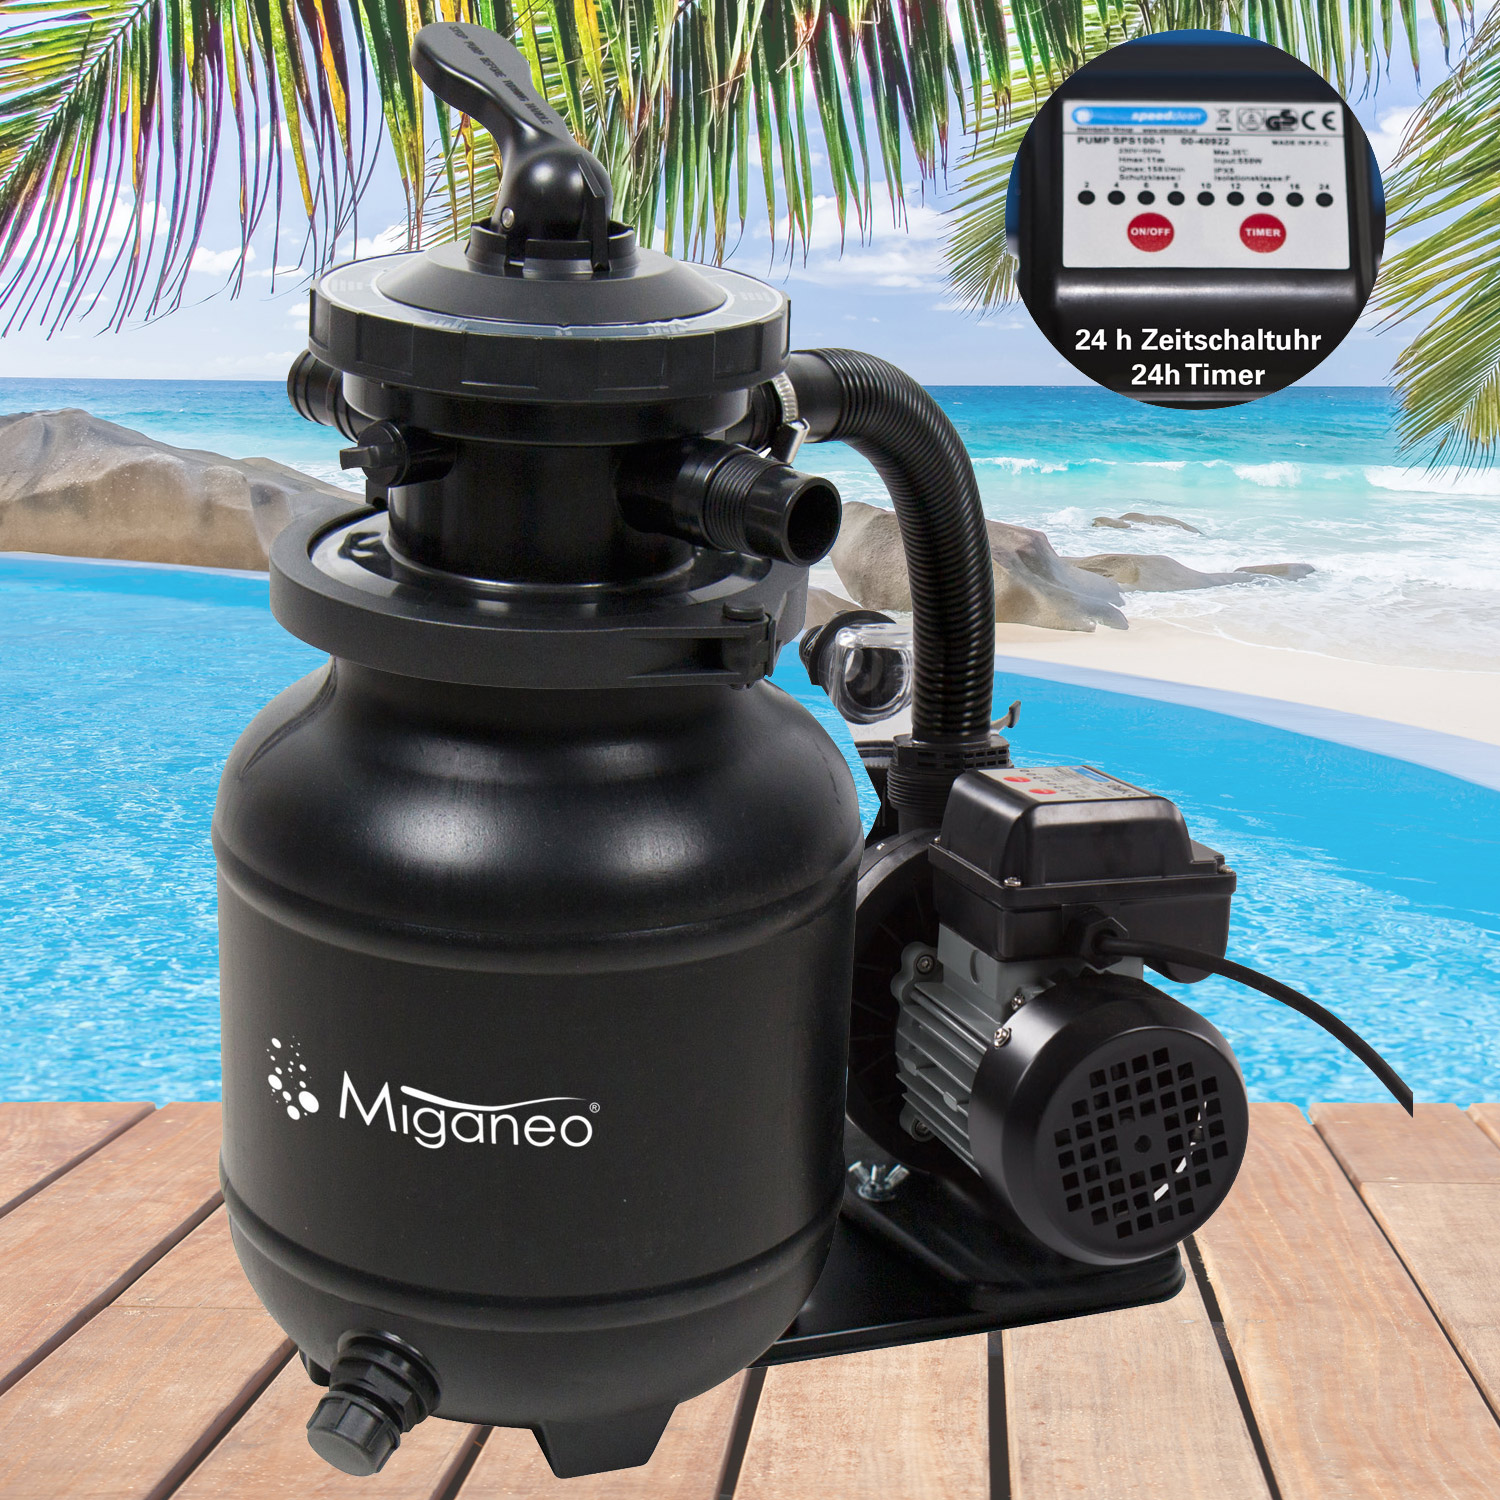 miganeo sandfilter system filter tank for pool pump. Black Bedroom Furniture Sets. Home Design Ideas